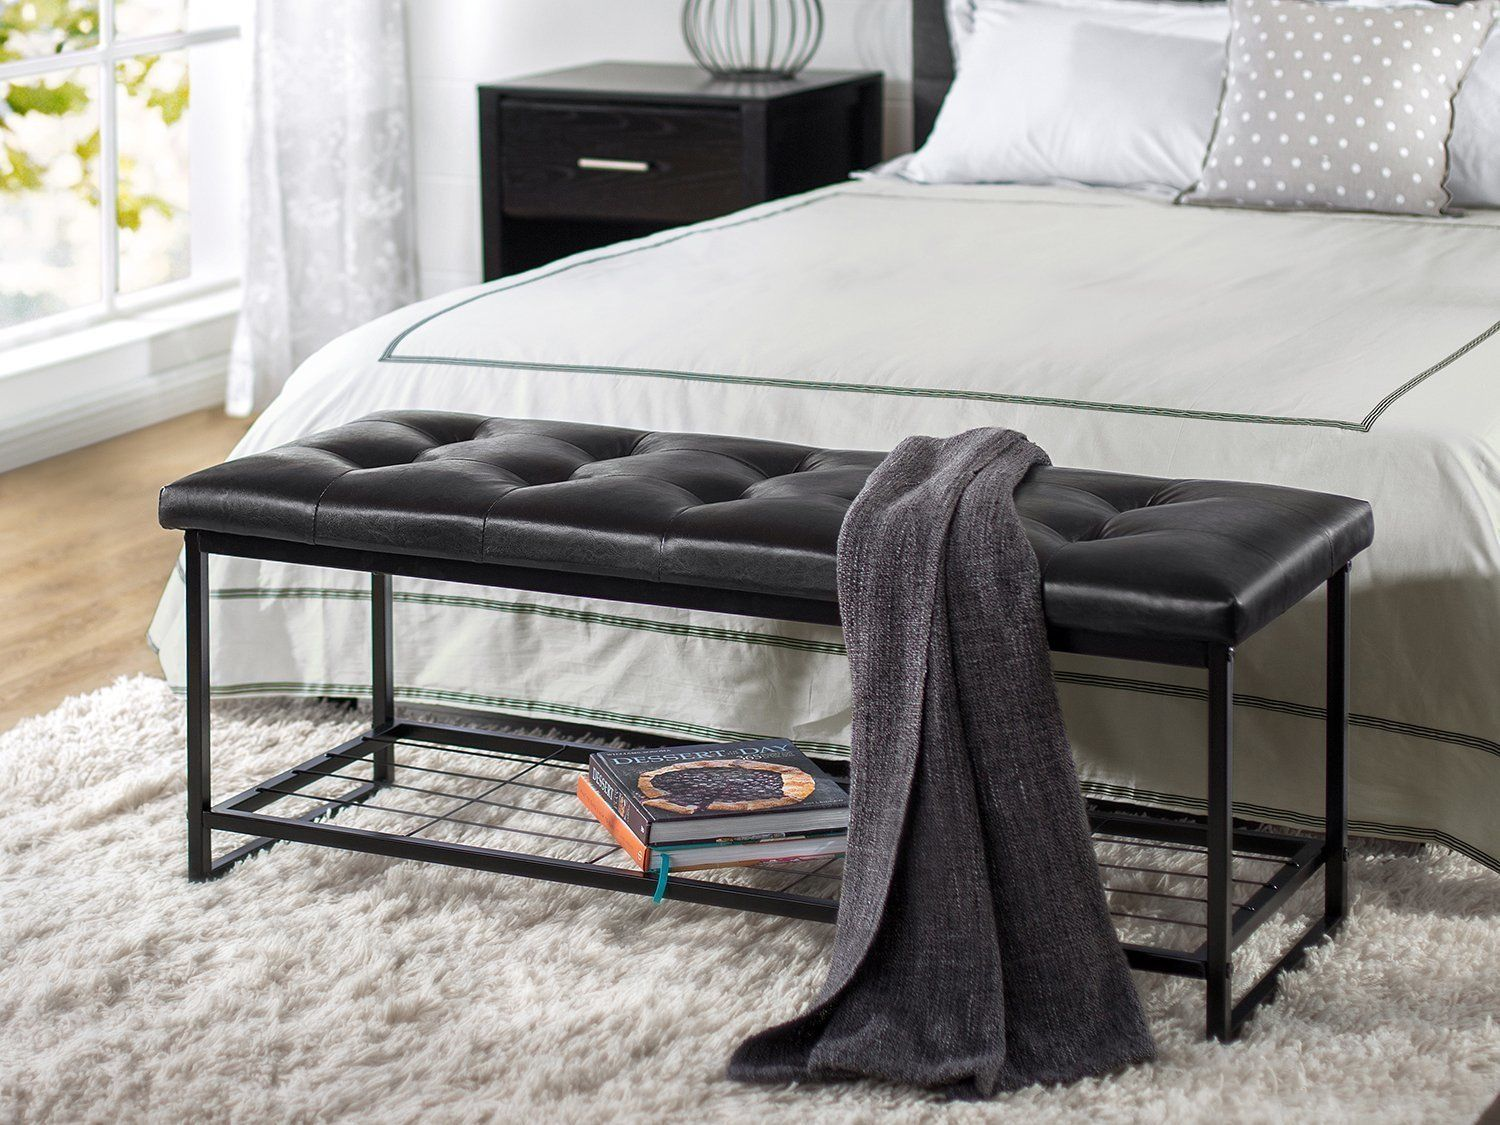 Entryway Storage Bench Bed End Seat Modern Bedroom Furniture Faux